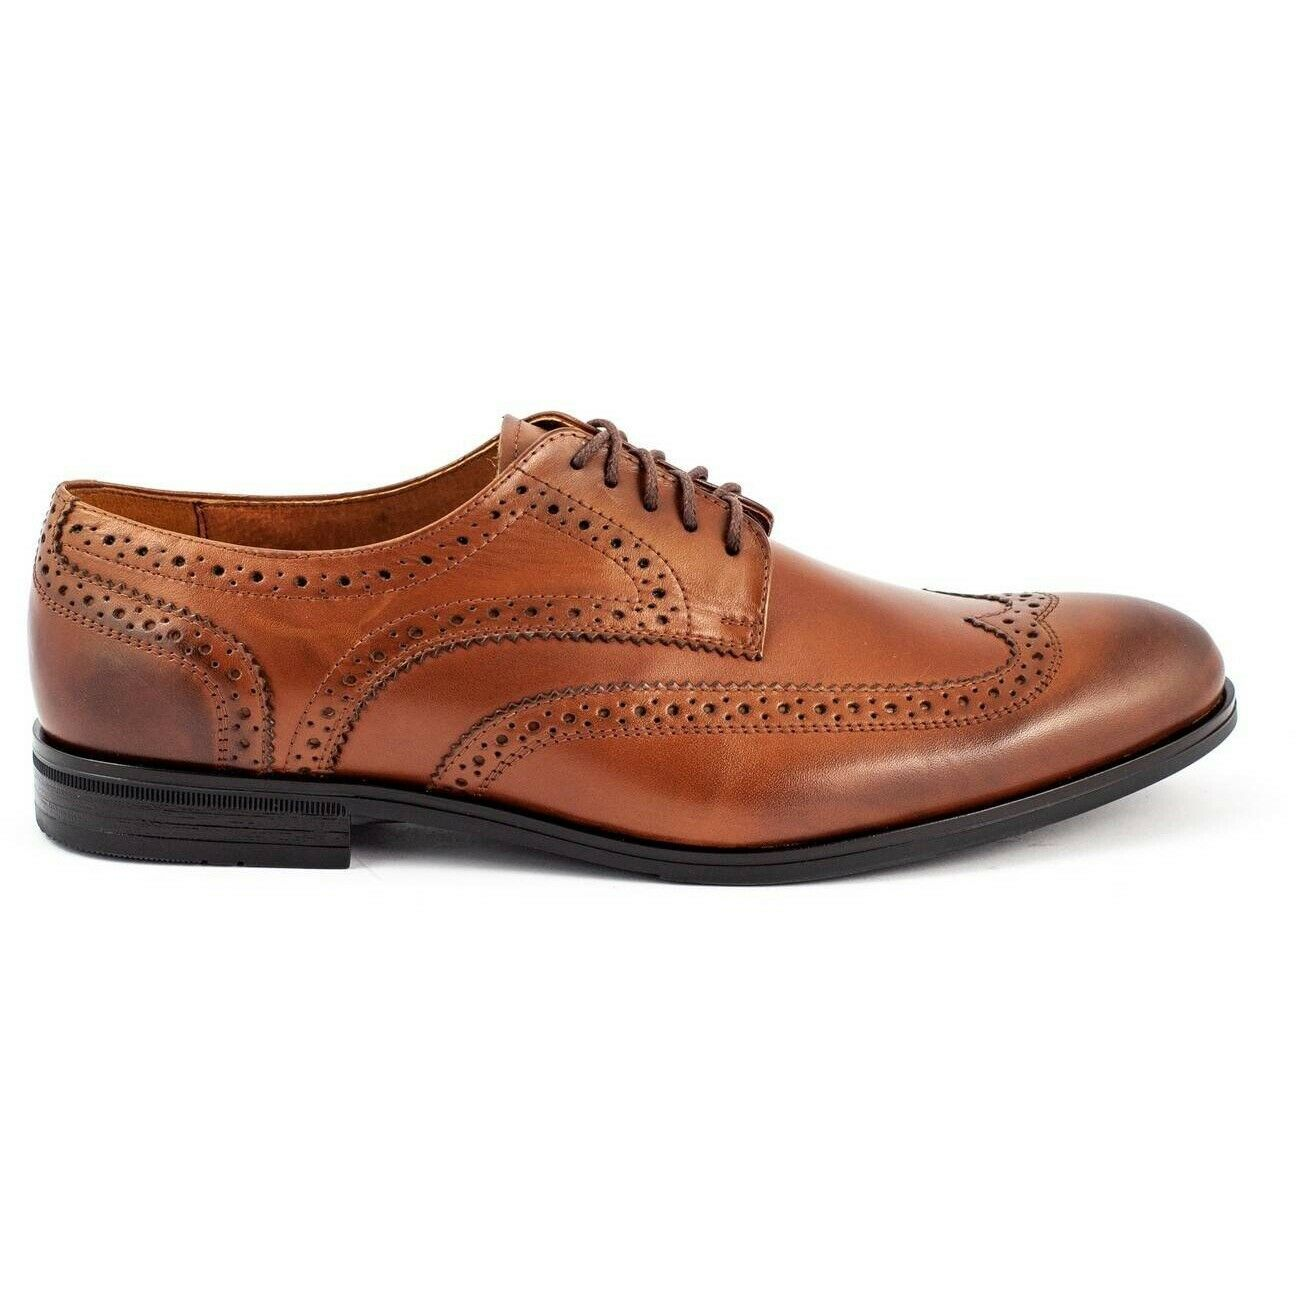 Olivier Formal shoes Brown brogues